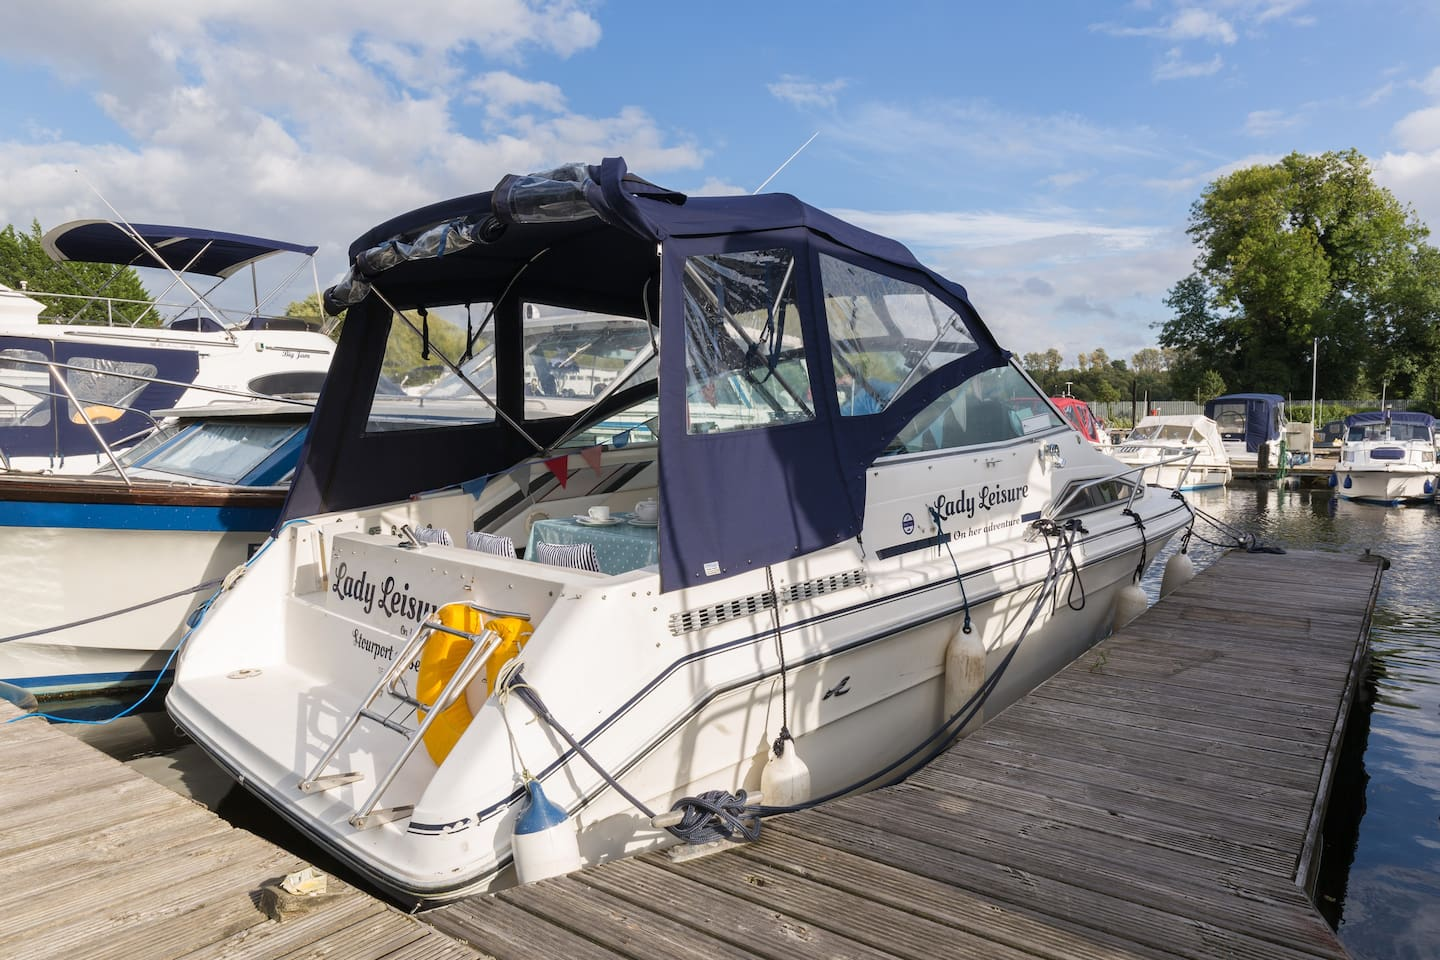 23 ft Sea Ray smart cosy cabin  cruiser. Quirky way to spend a night or two or more